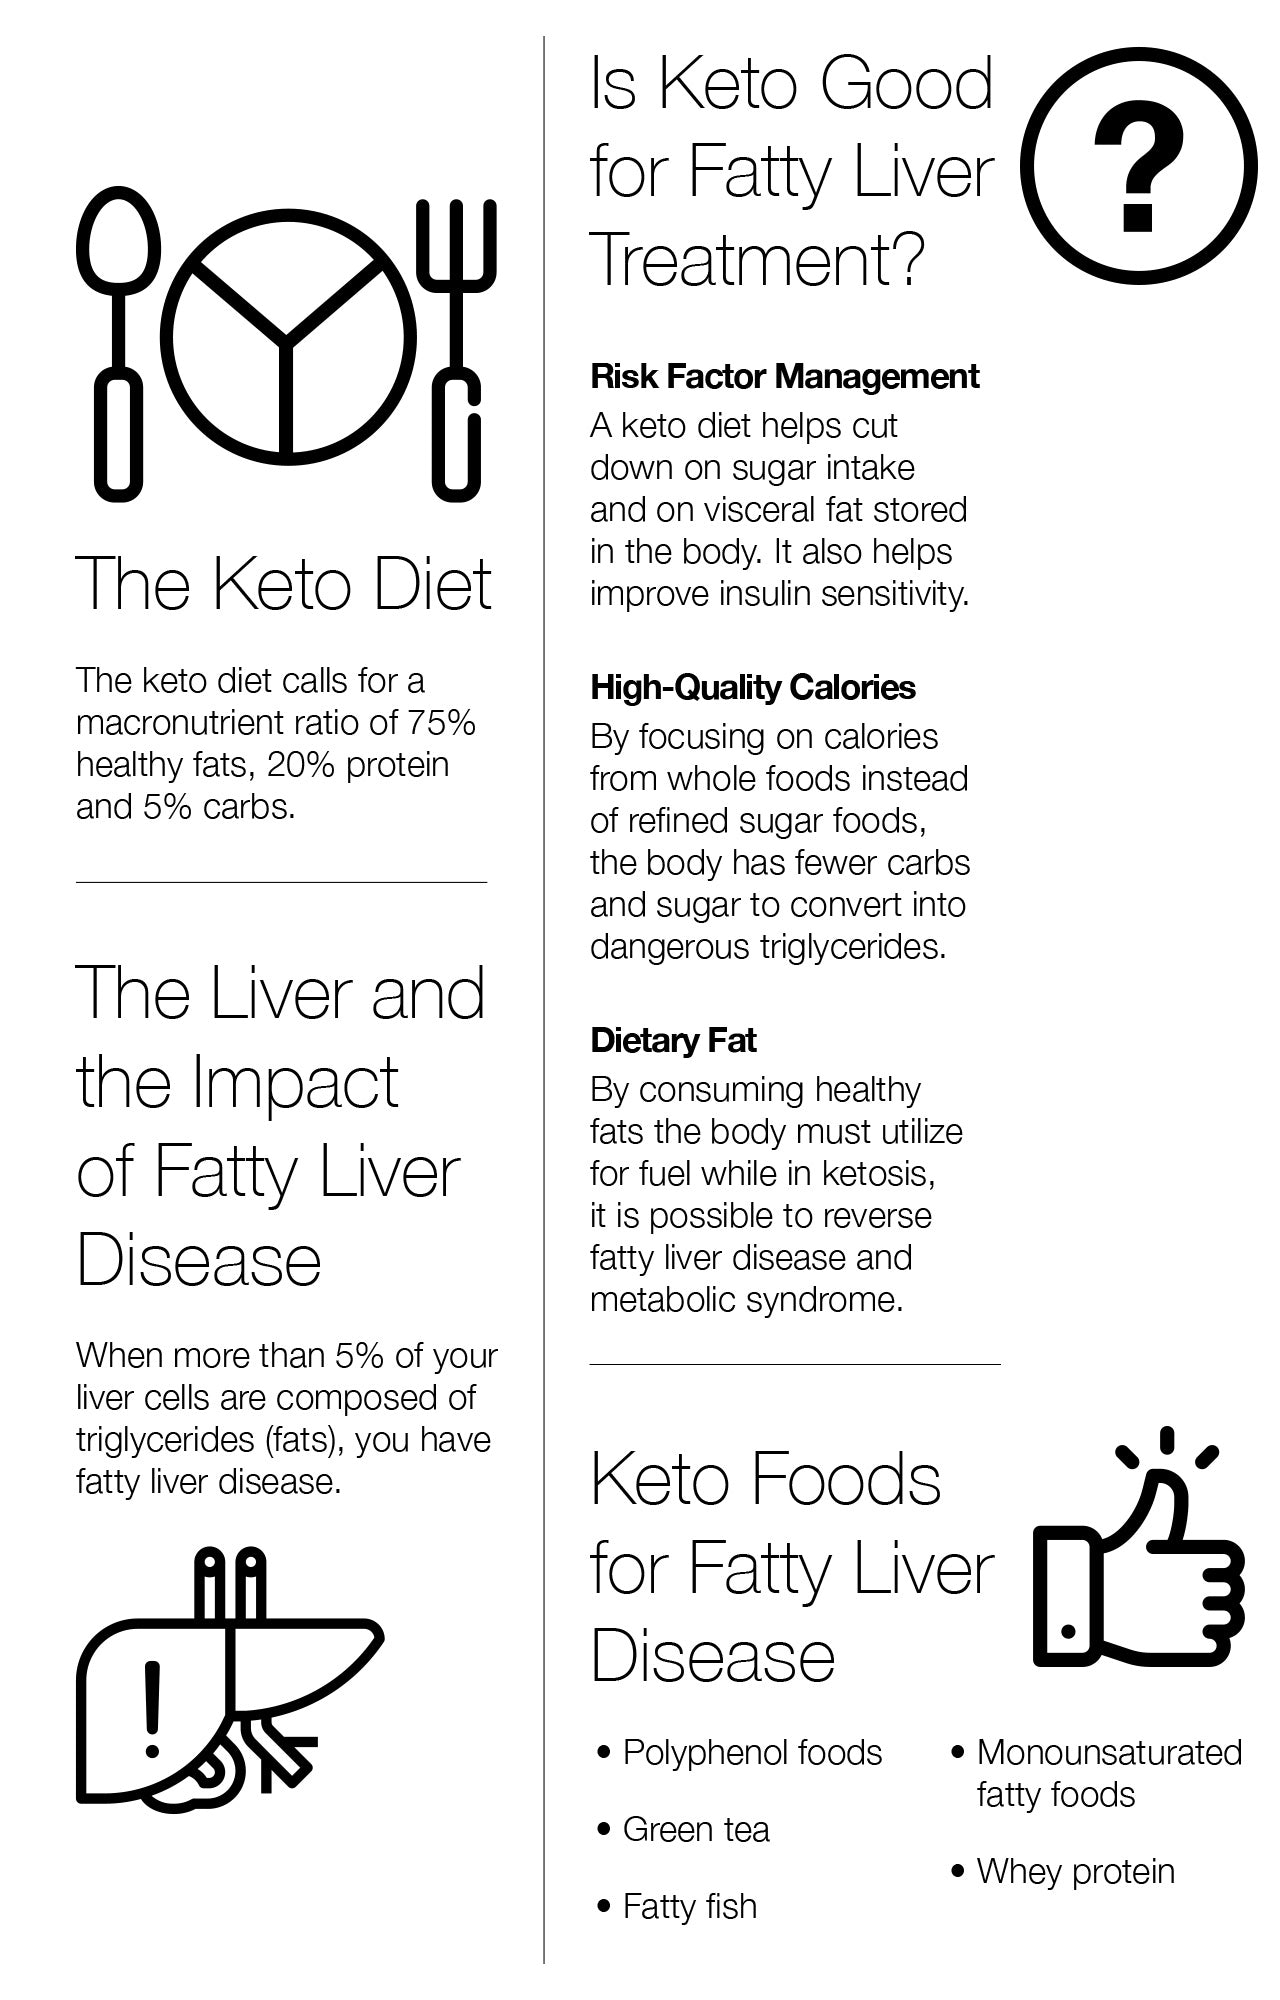 Is Keto Good for Fatty Liver Treatment?